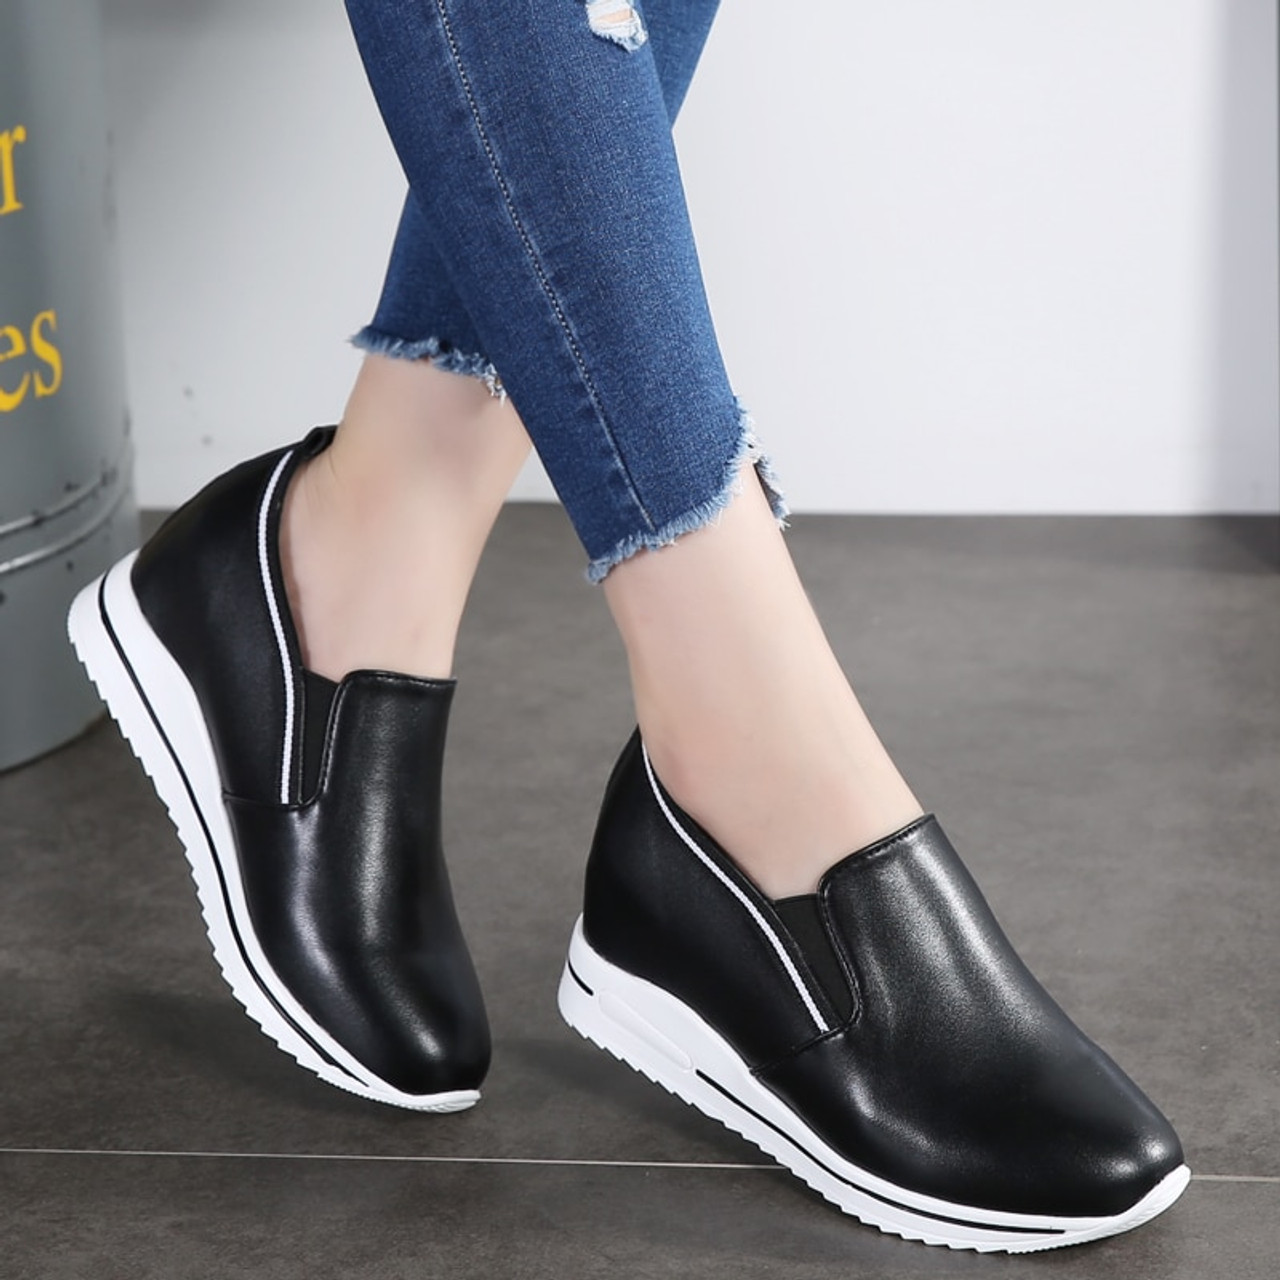 a505cce6bdad ... AODLEE Increasing Flat Shoes Women Sneakers Fashion Platform Casual  Shoes Woman Genuine Leather Slip on Ladies ...